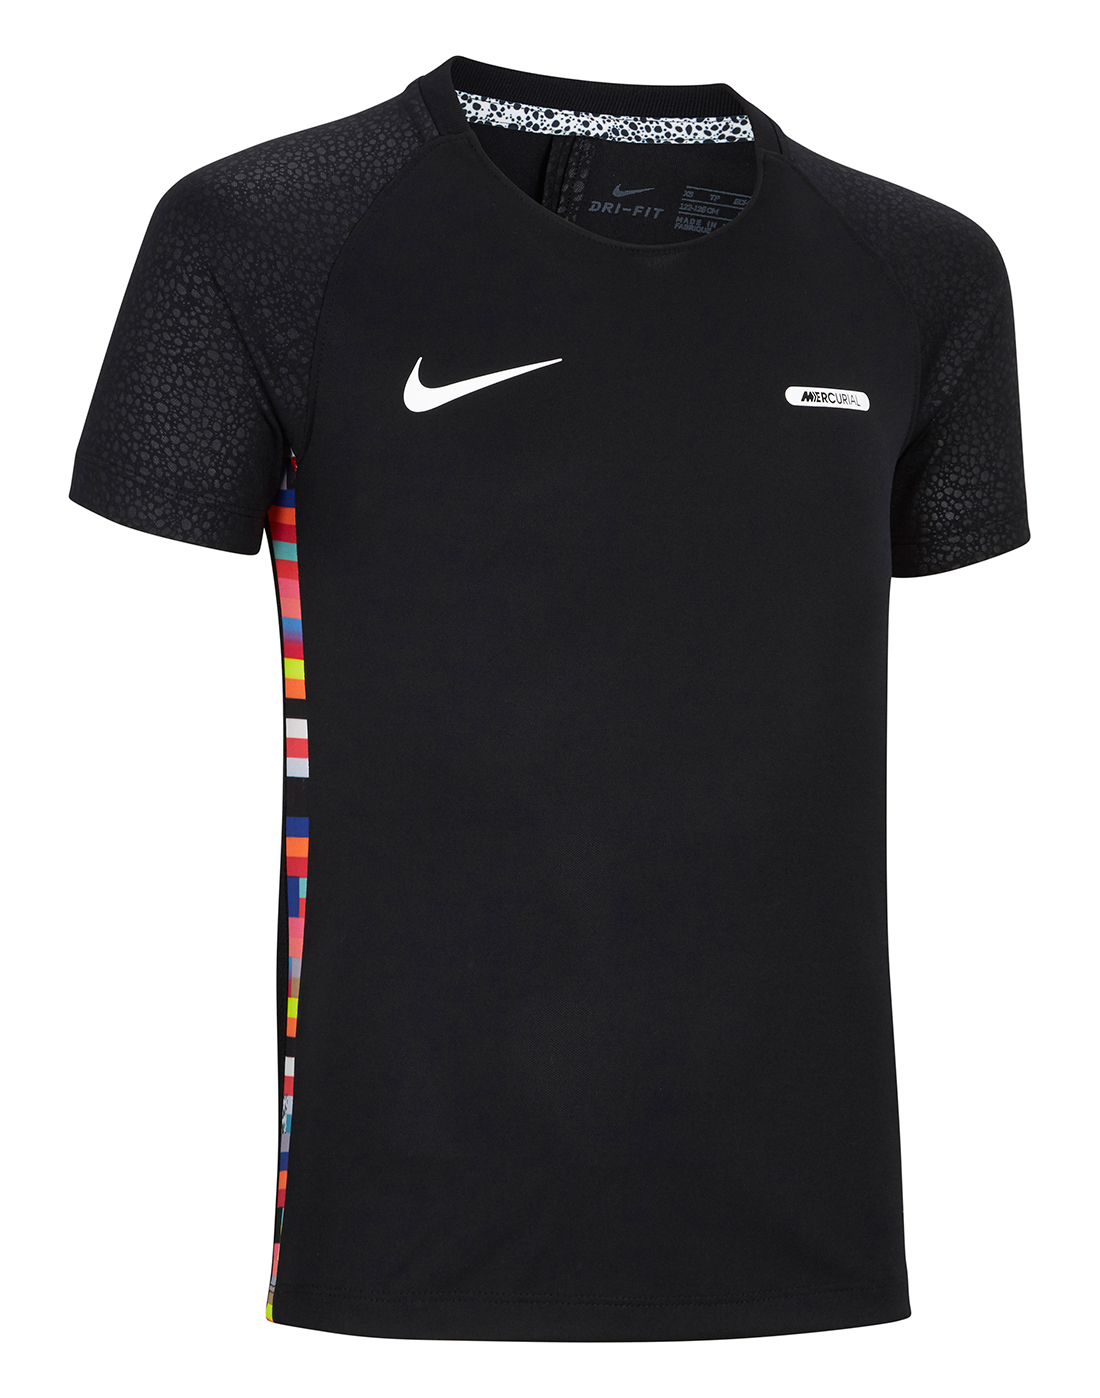 3a7bfe8af Nike Older Boys Mercurial T-Shirt | Life Style Sports